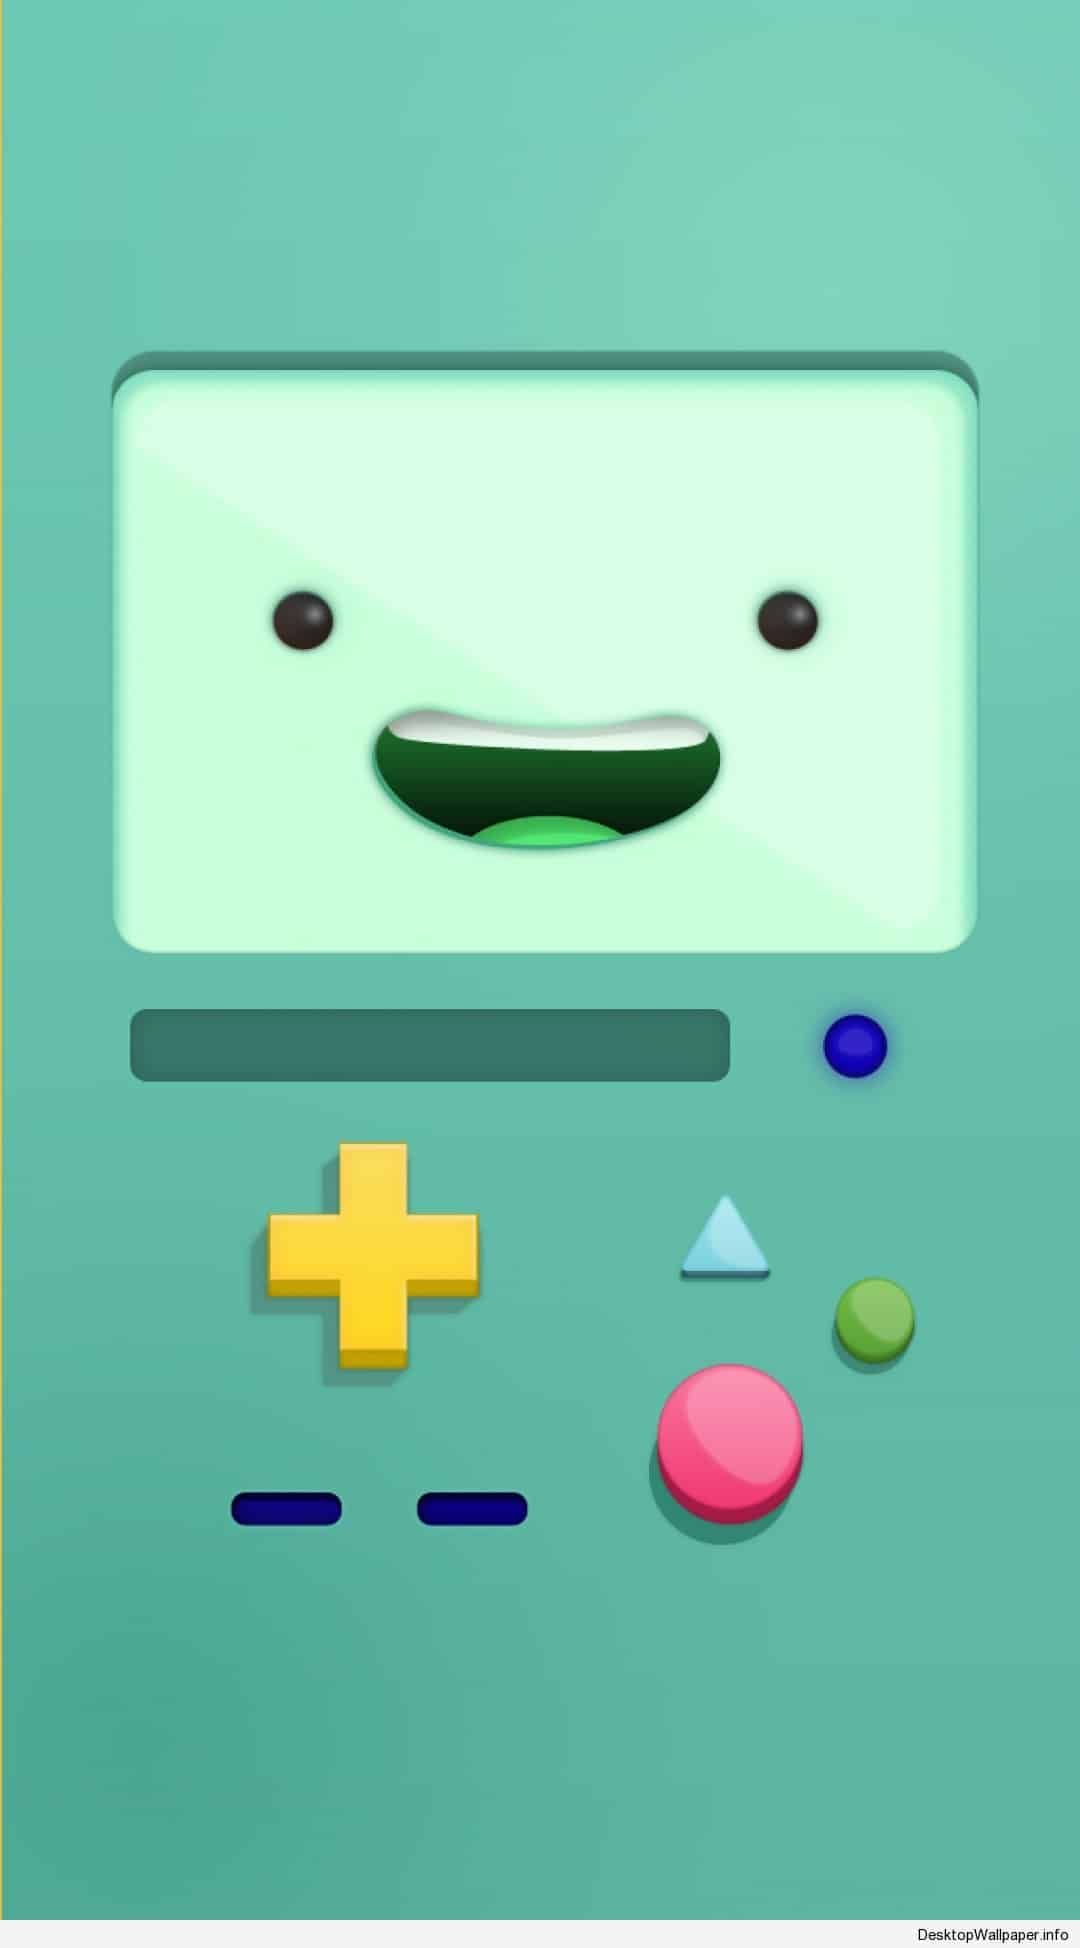 Adventure time wallpaper for android httpdesktopwallpaperfo adventure time wallpaper for android httpdesktopwallpaperfo adventure thecheapjerseys Choice Image